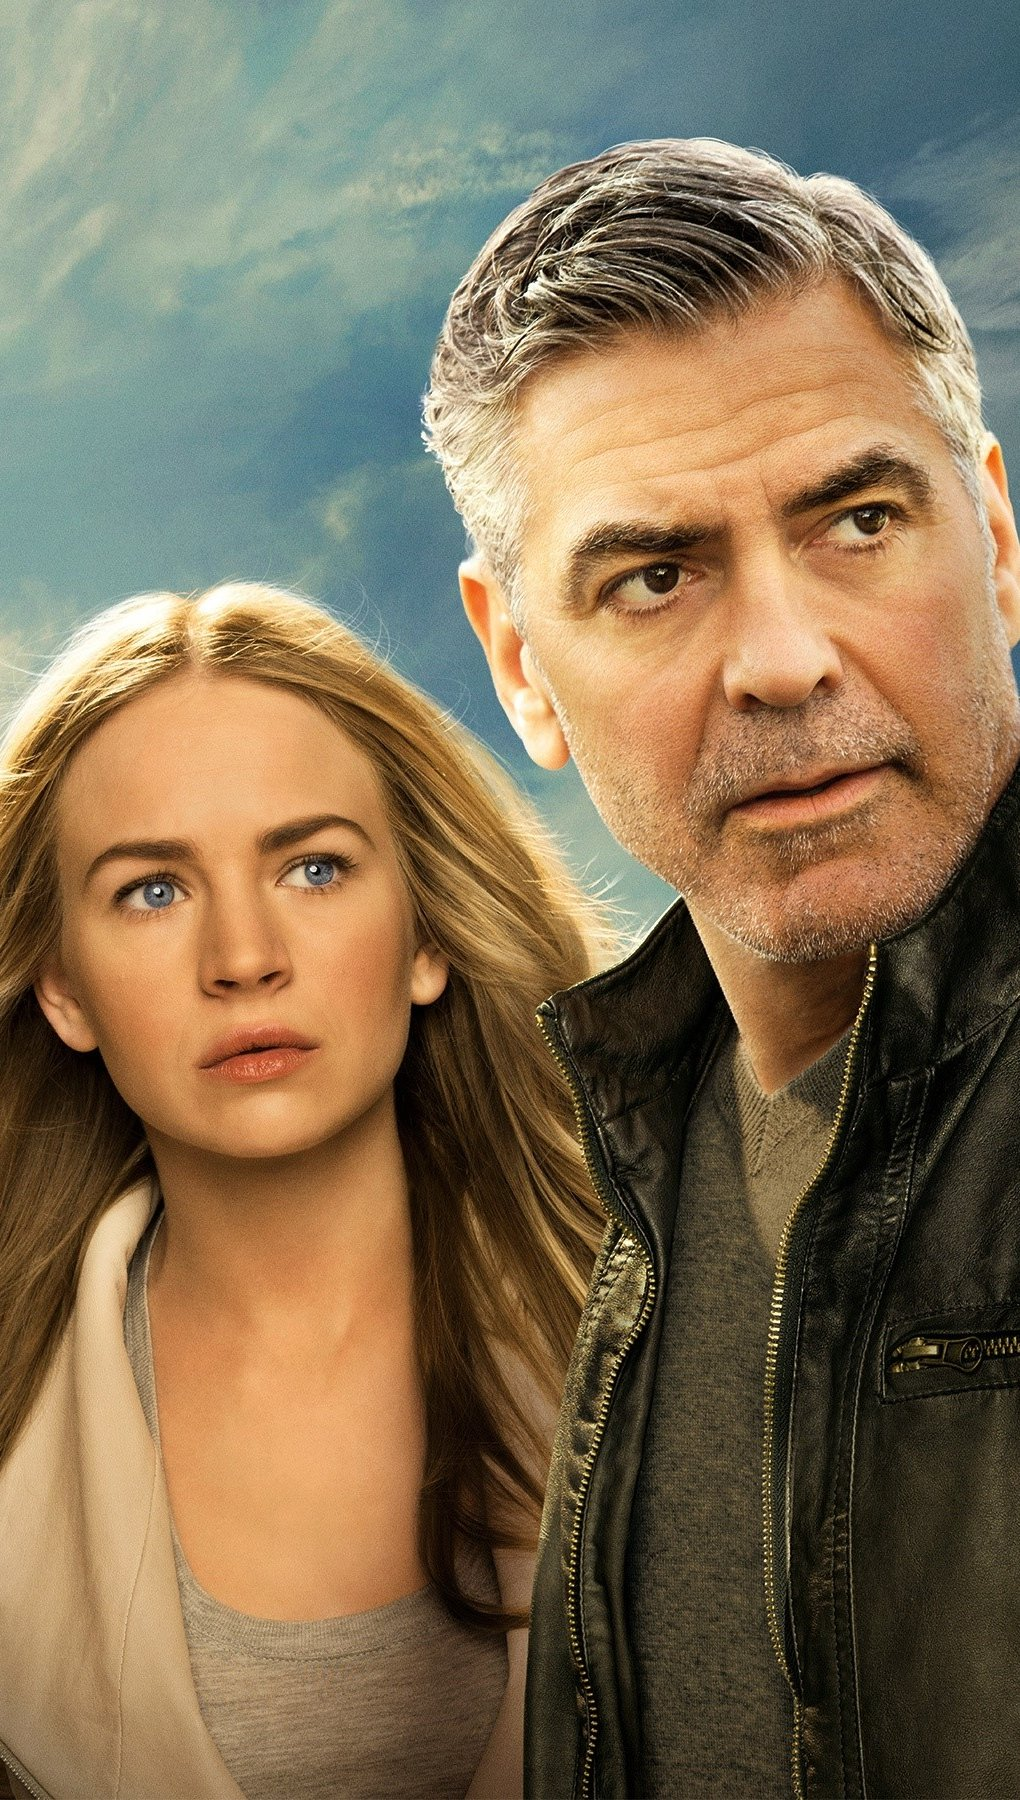 Wallpaper Britt Robertson and George Clooney in Tomorrowland Vertical